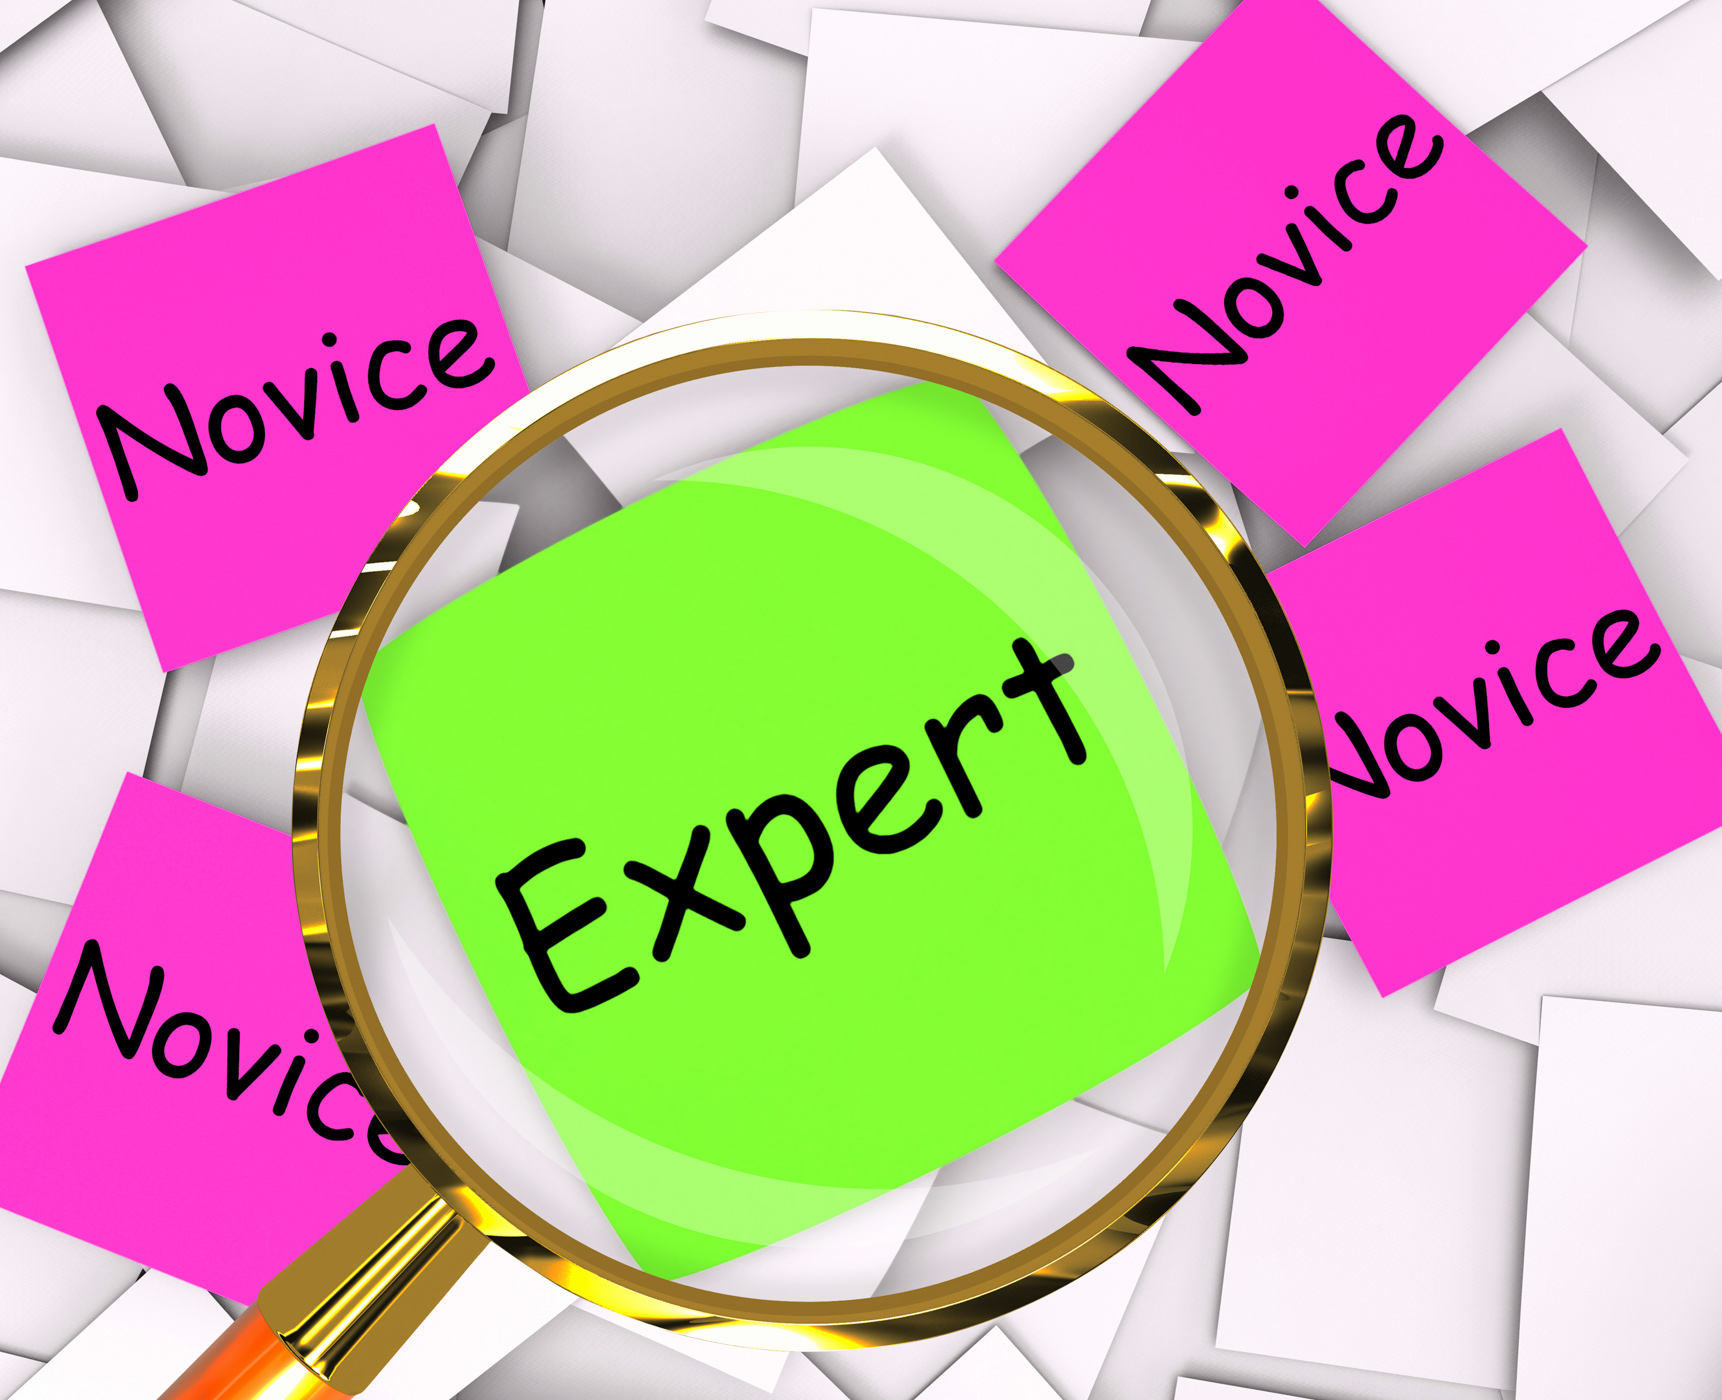 Expert novice post-it papers mean experienced or inexperienced photo